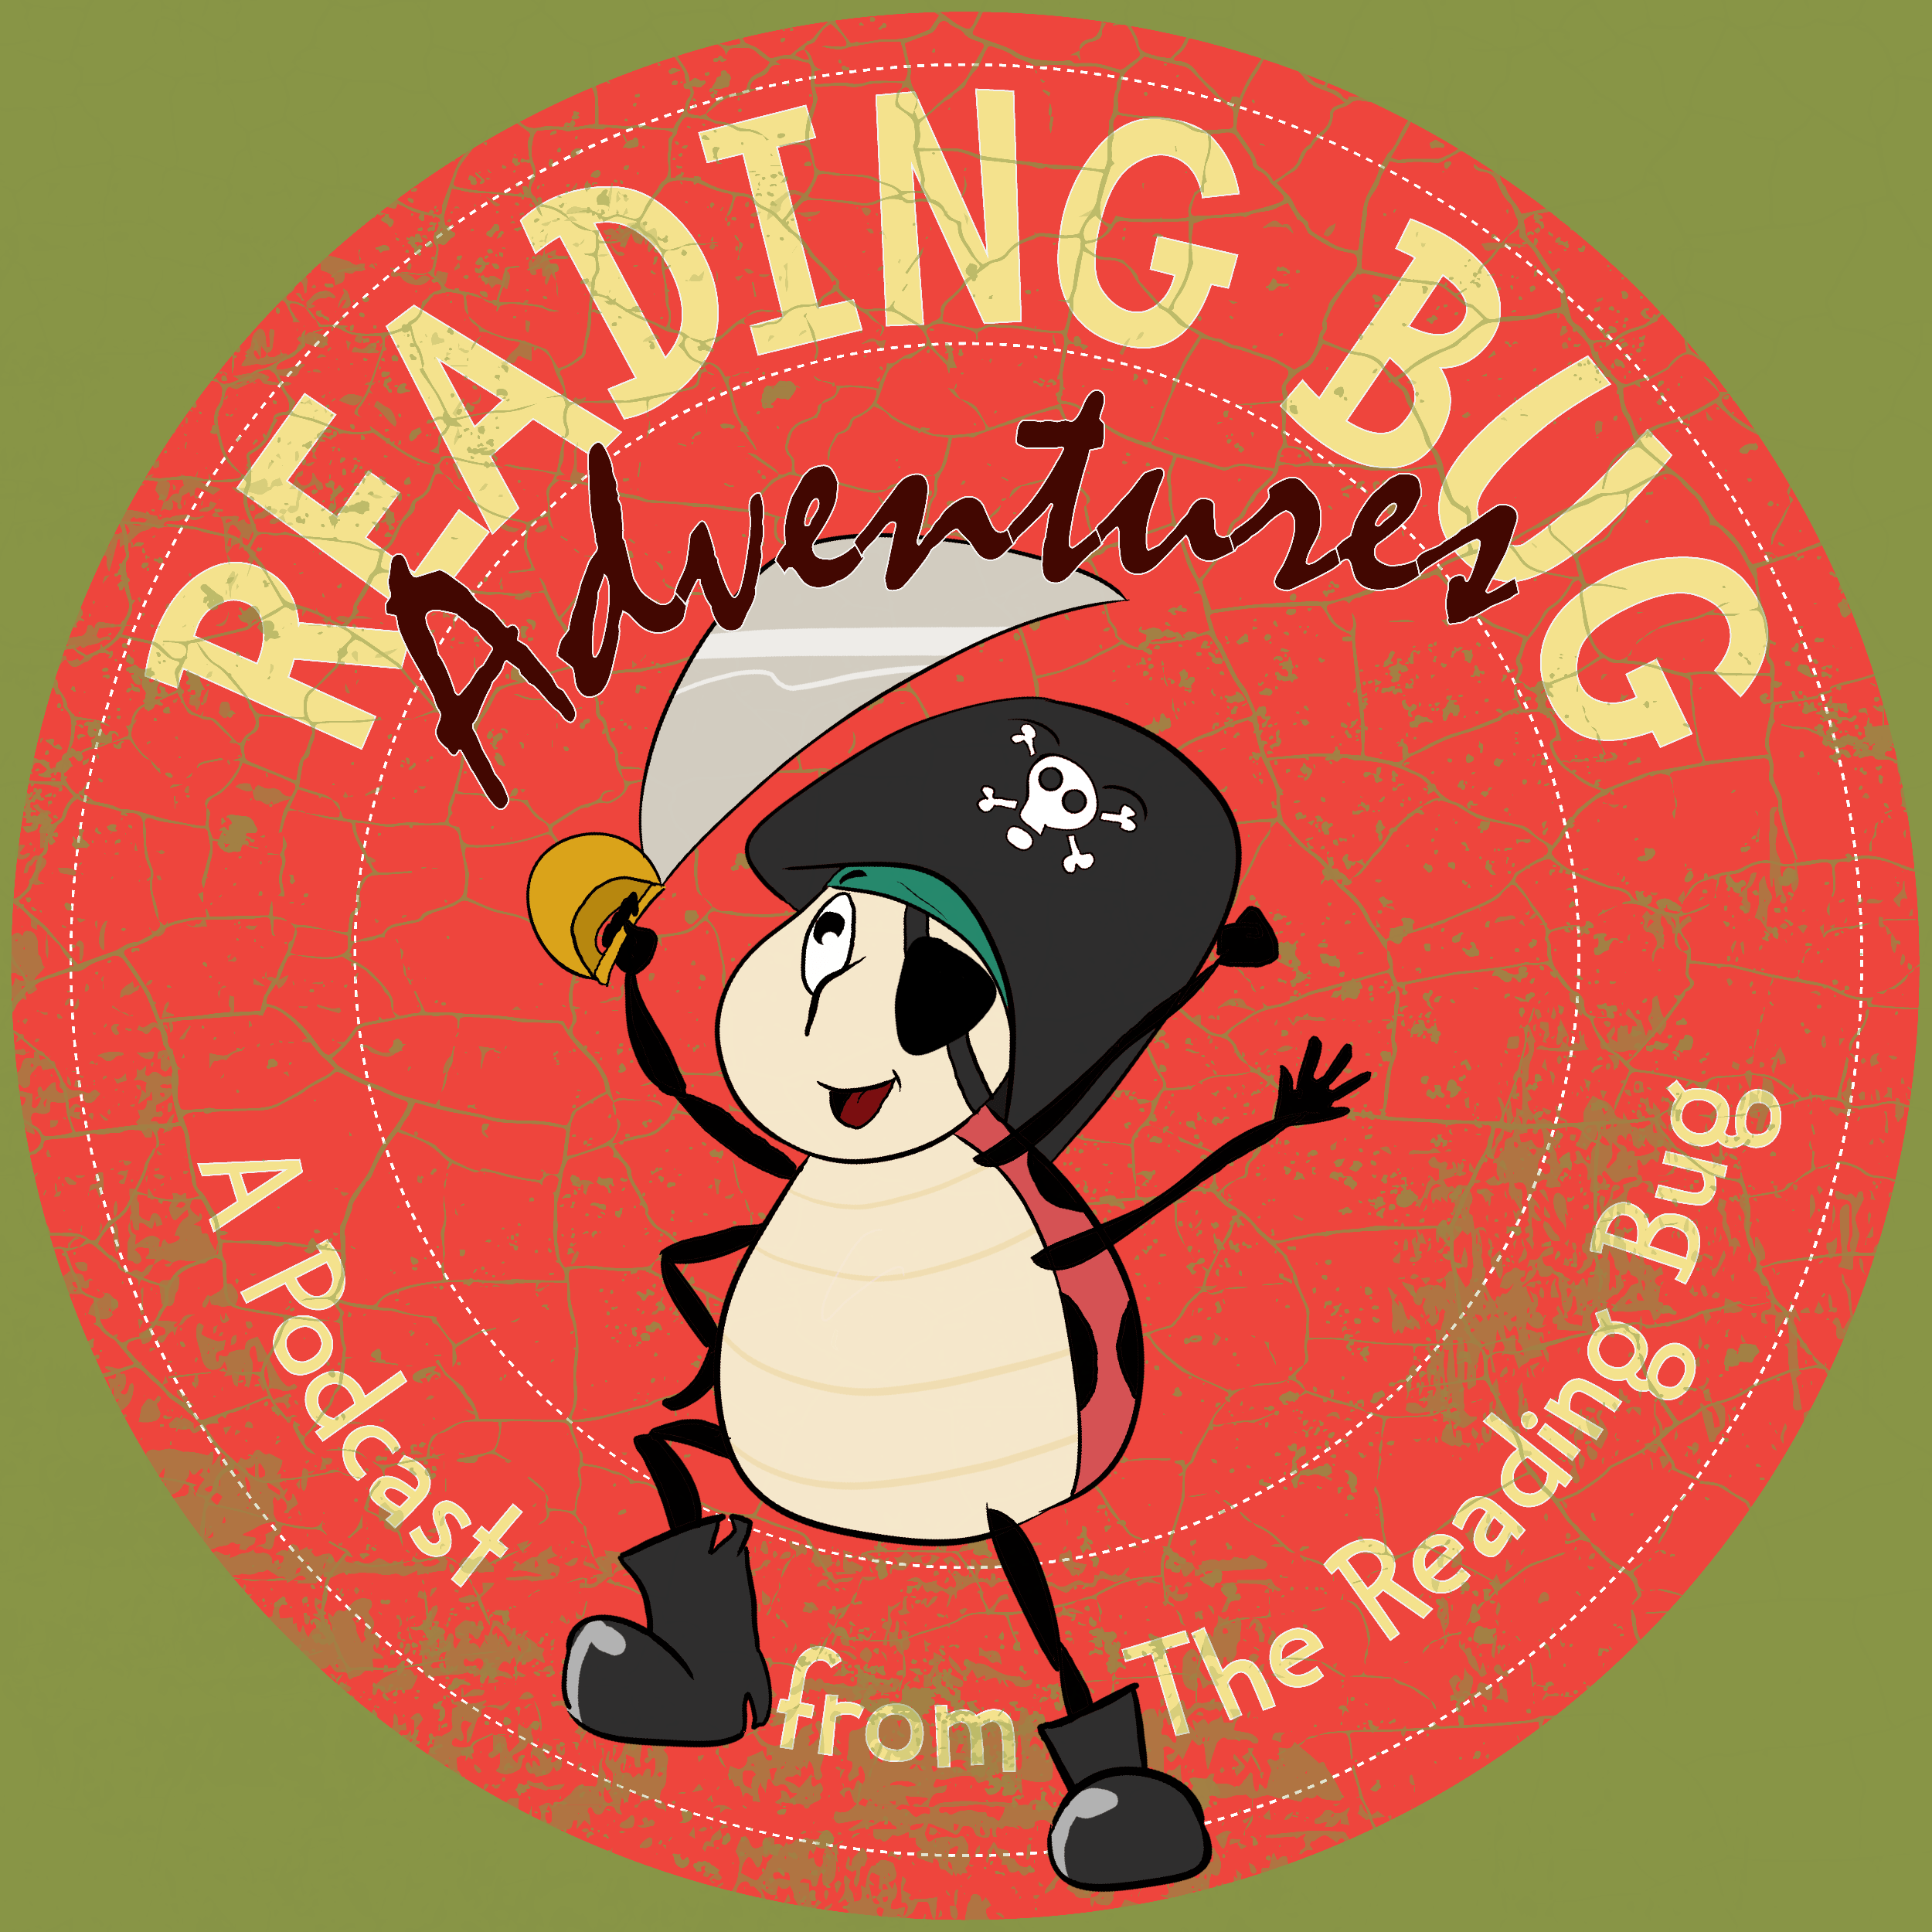 Reading Bug Adventures -  Original Stories with Music for Kids show art